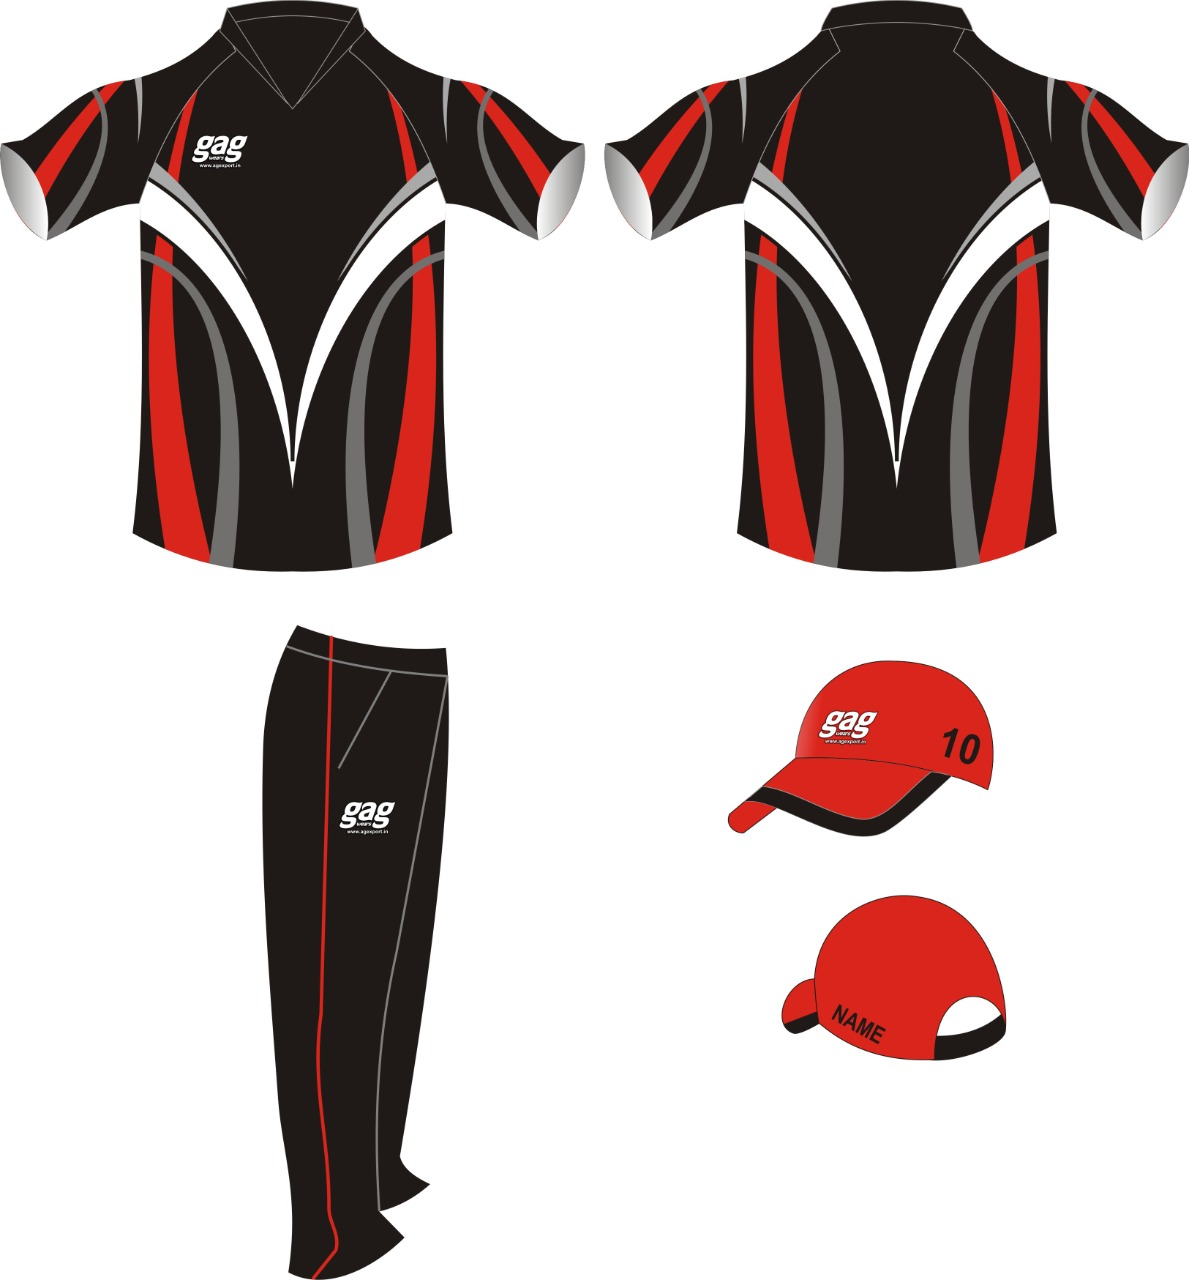 Mens Cricket Uniform Manufacturers in Jalandhar in South Korea